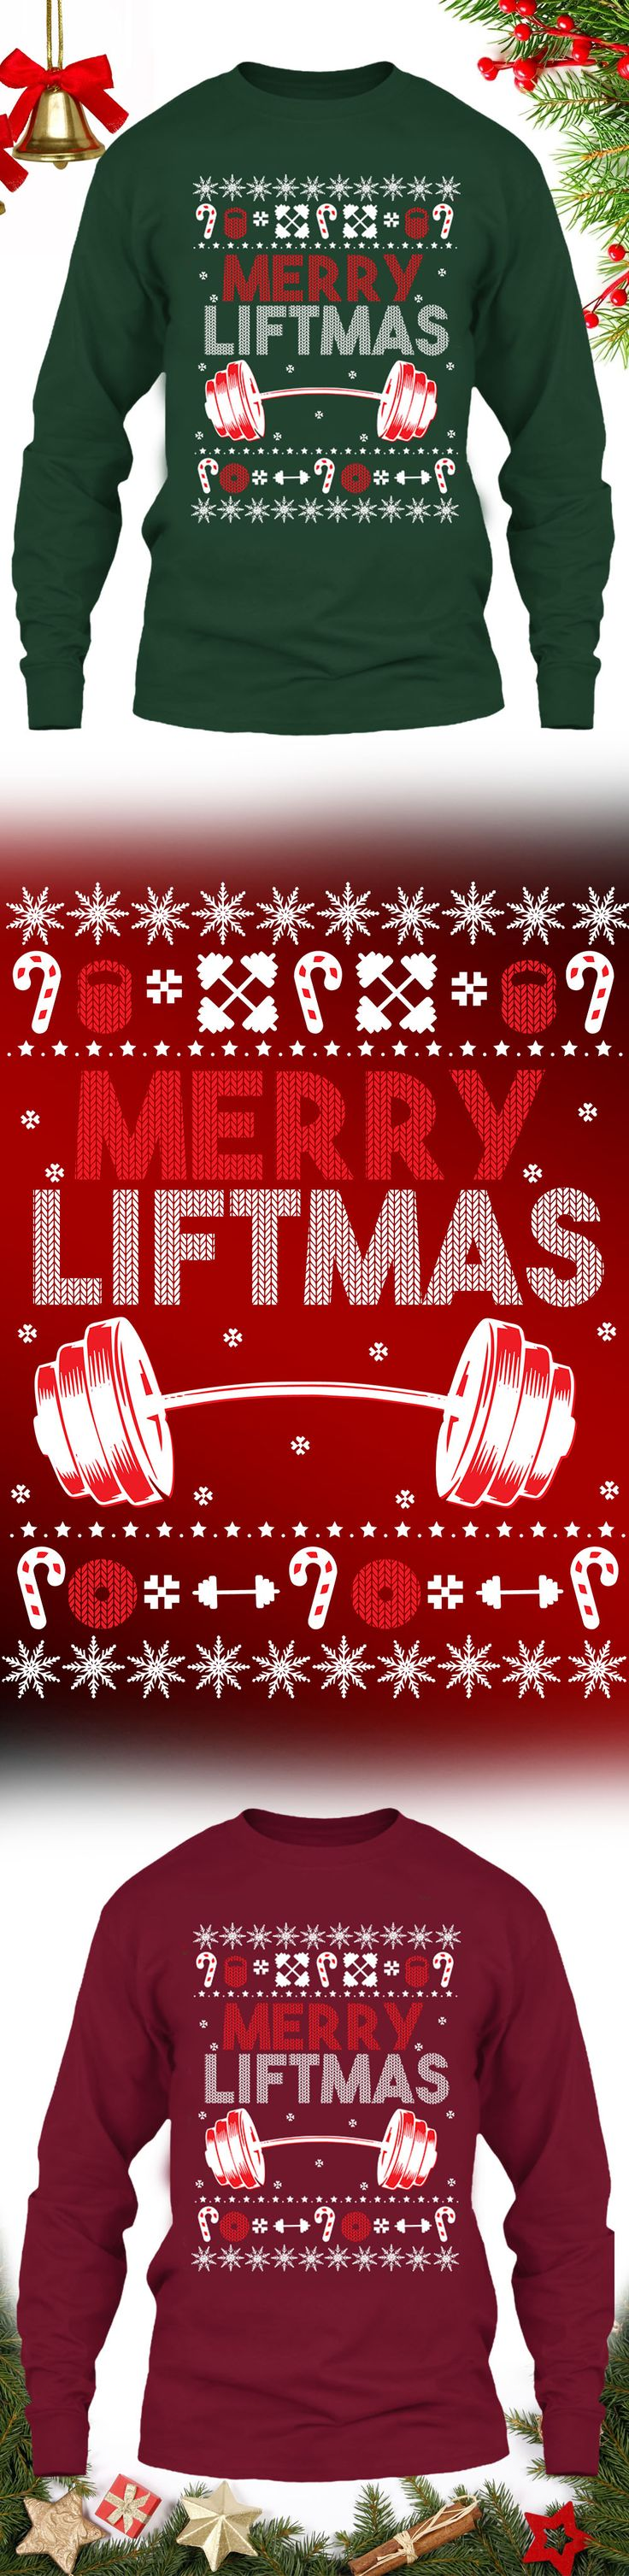 Weight Lifting Merryliftmas Sweater - Get this limited edition ugly Christmas Sweater just in time for the holidays! Buy 2 or more, save on shipping!